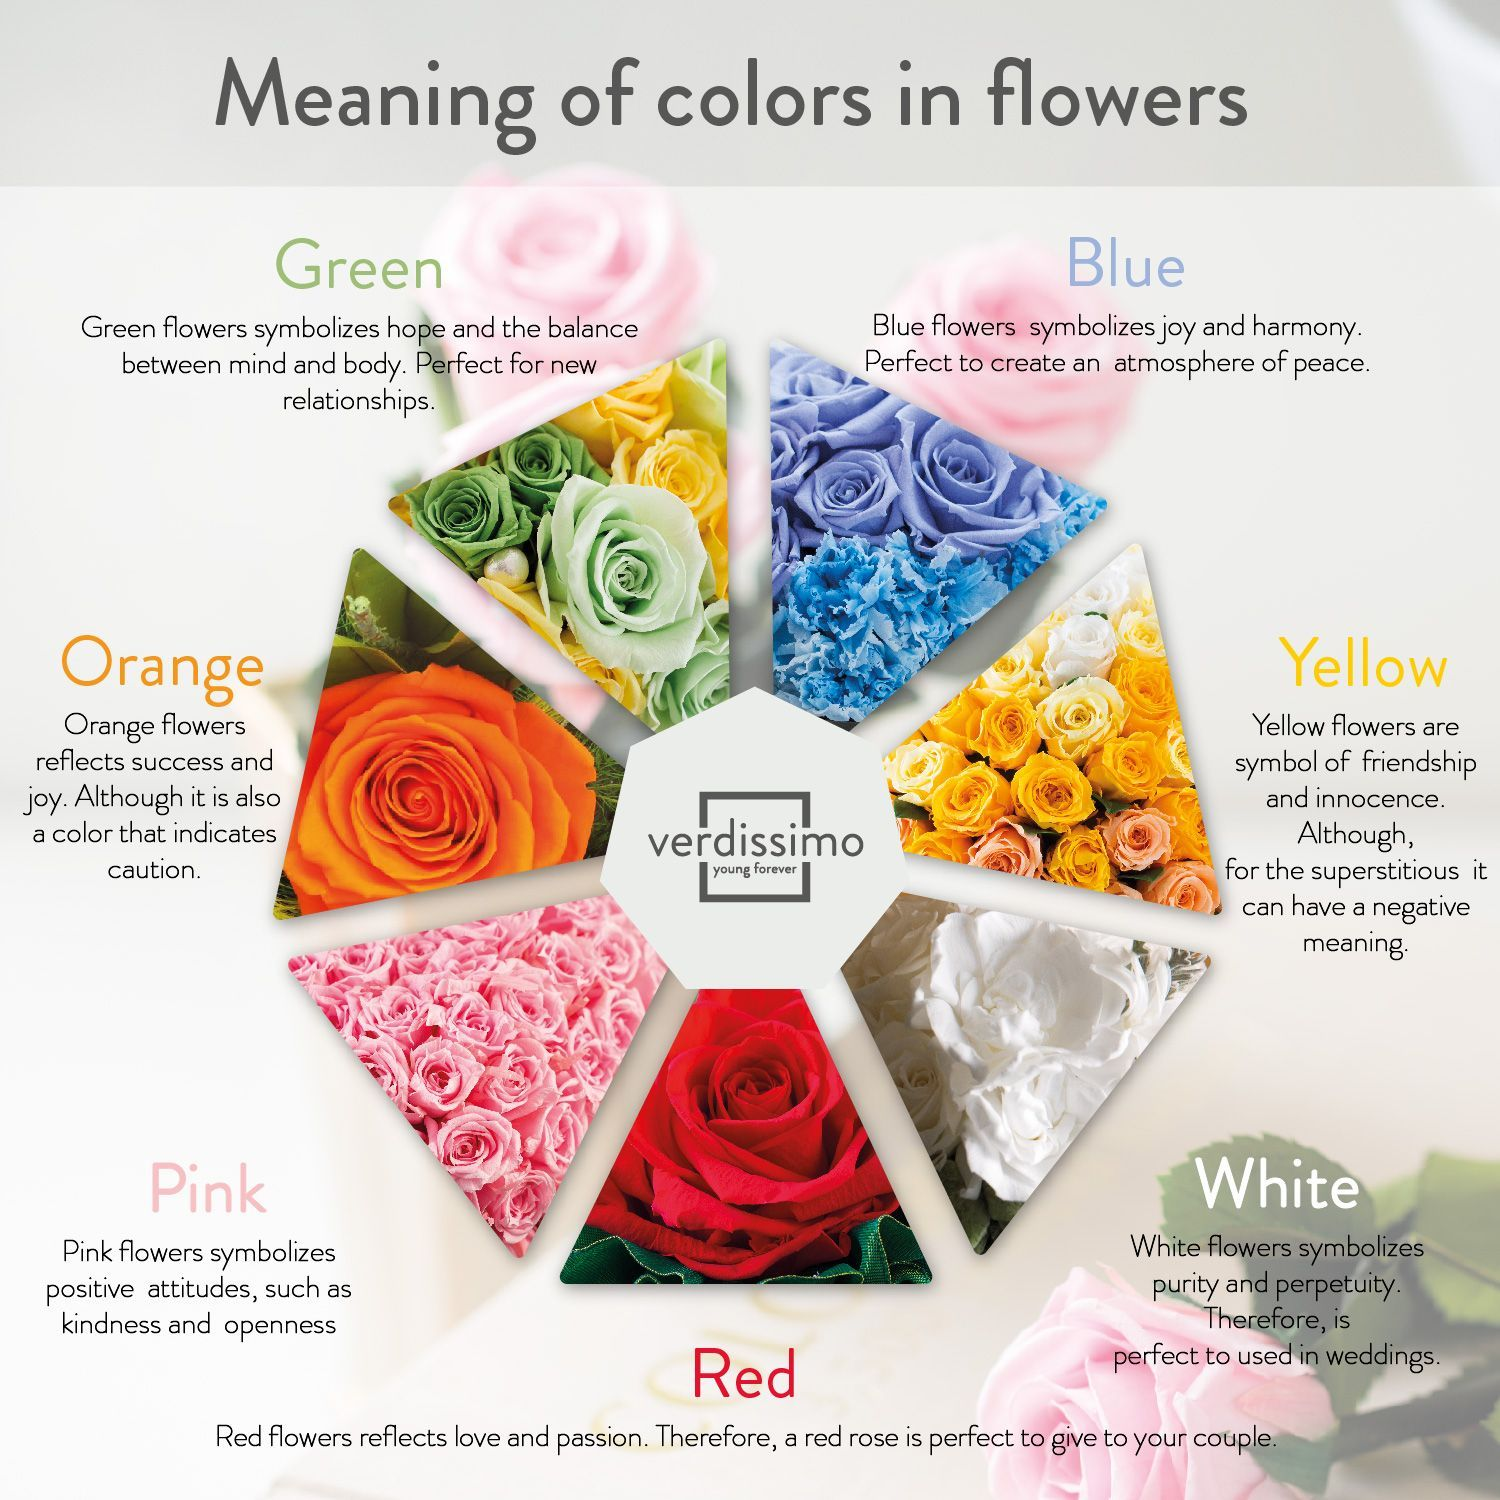 Roses Are One Of The Flowers With The Most Meanings They Are The Symbol Of Love Sweetness Friendship Innoc Rose Color Meanings Flower Meanings Rose Meaning